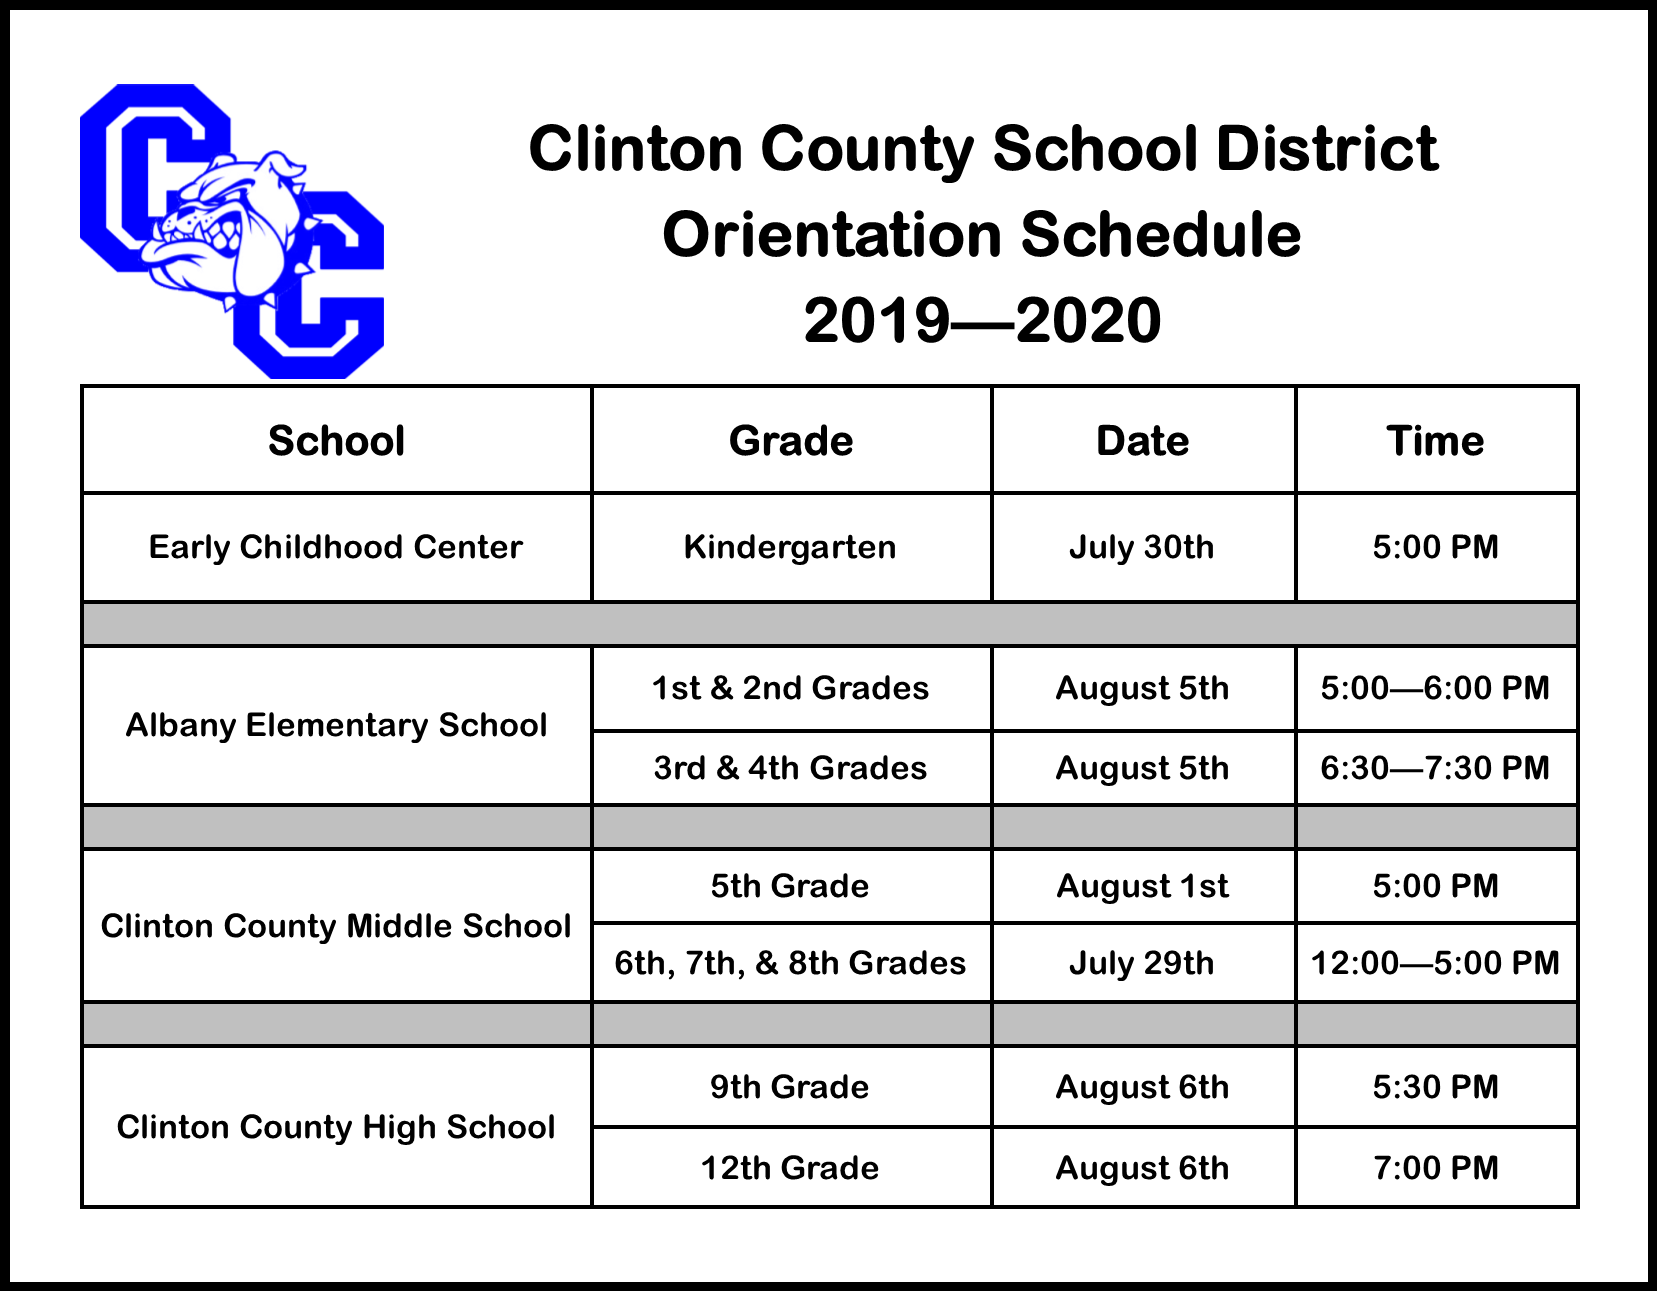 Mark your calendars! Here is the Orientation Schedule for next school year!